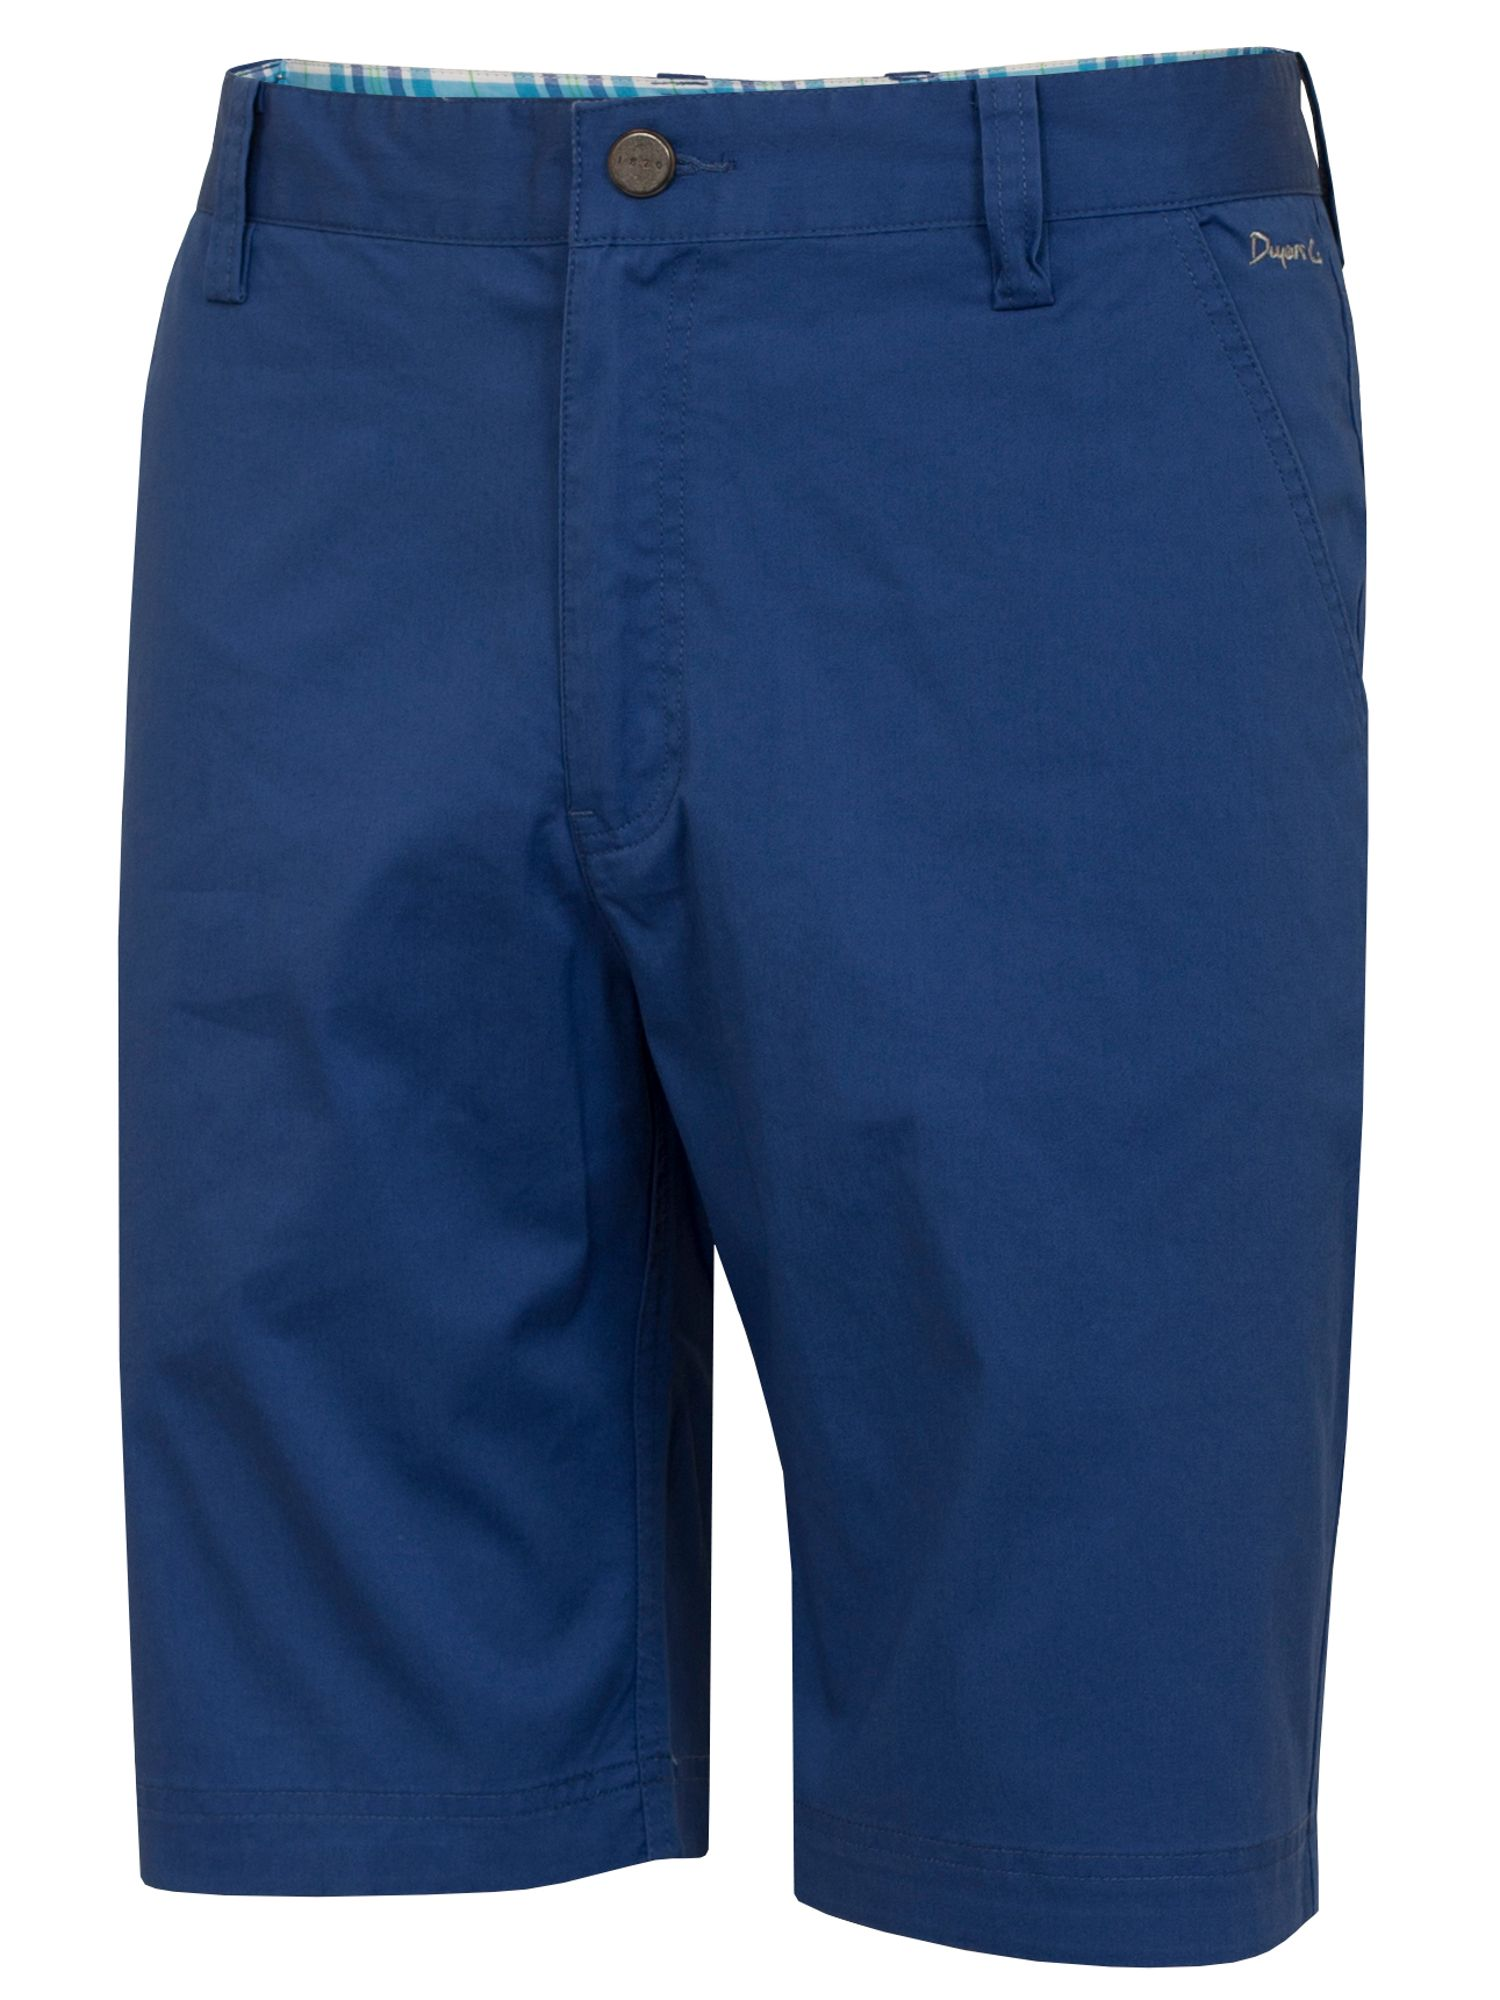 Dwyers and Co Men's Dwyers and Co Titanium Chino Shorts, Cobalt